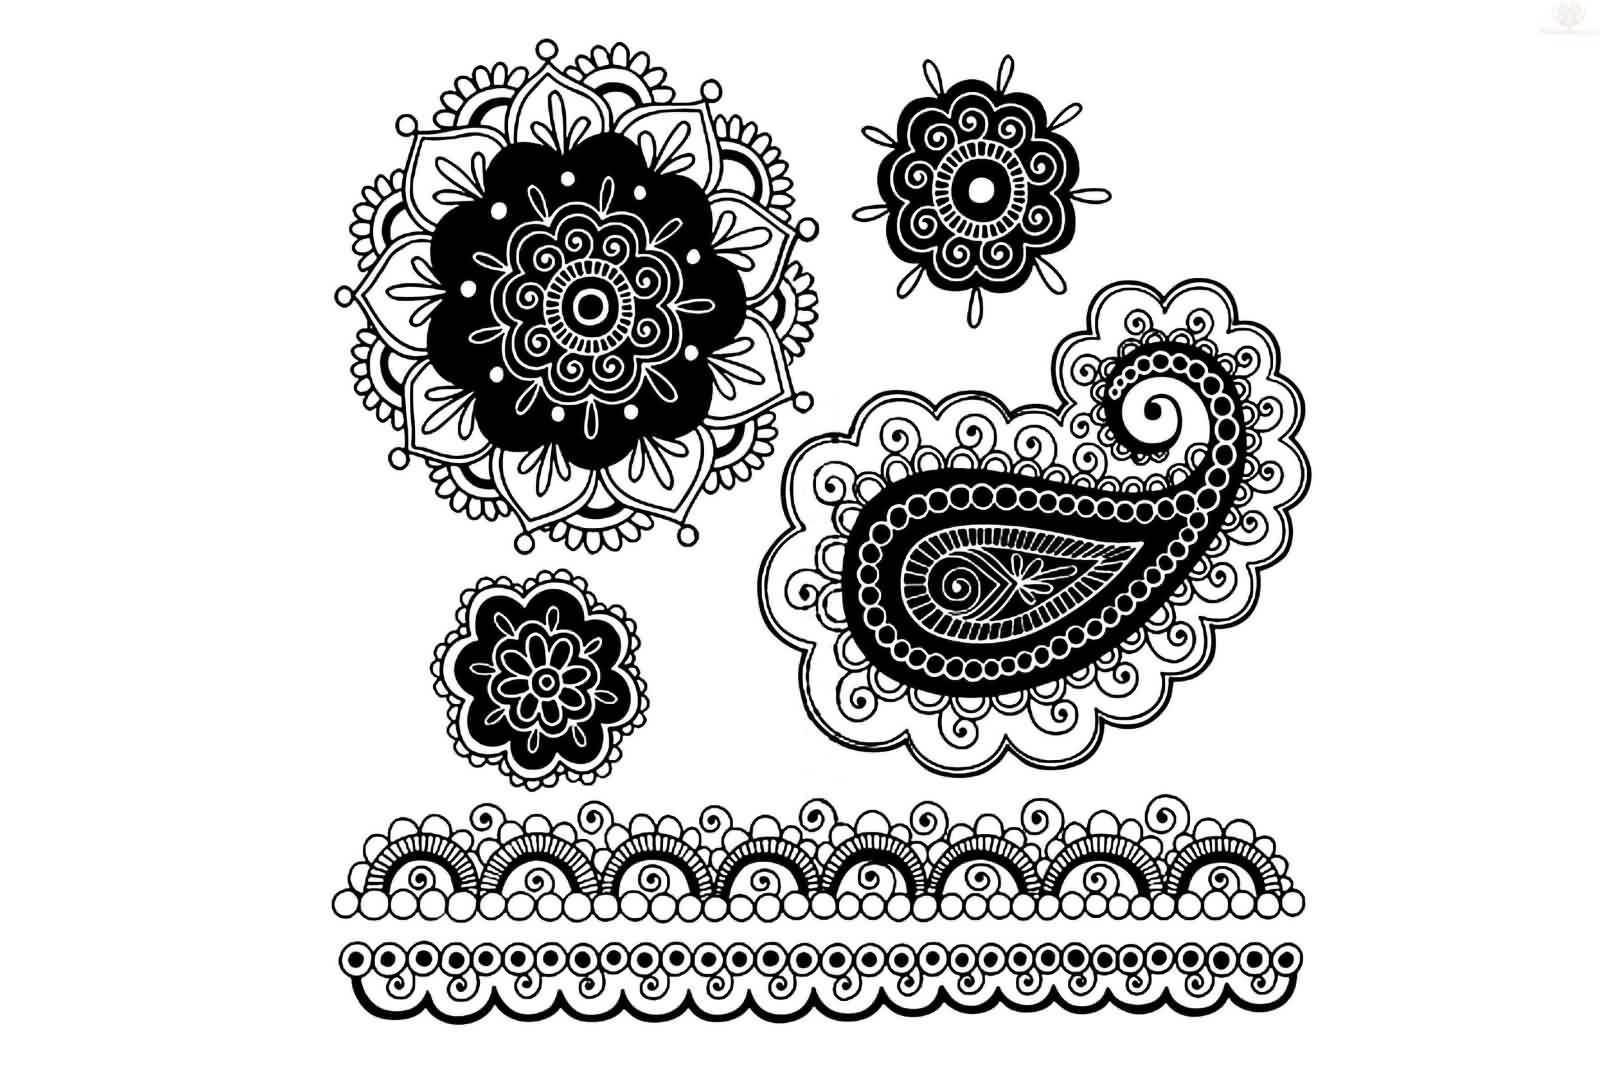 Nice And Simple Paisley Pattern Tattoo Design Idea